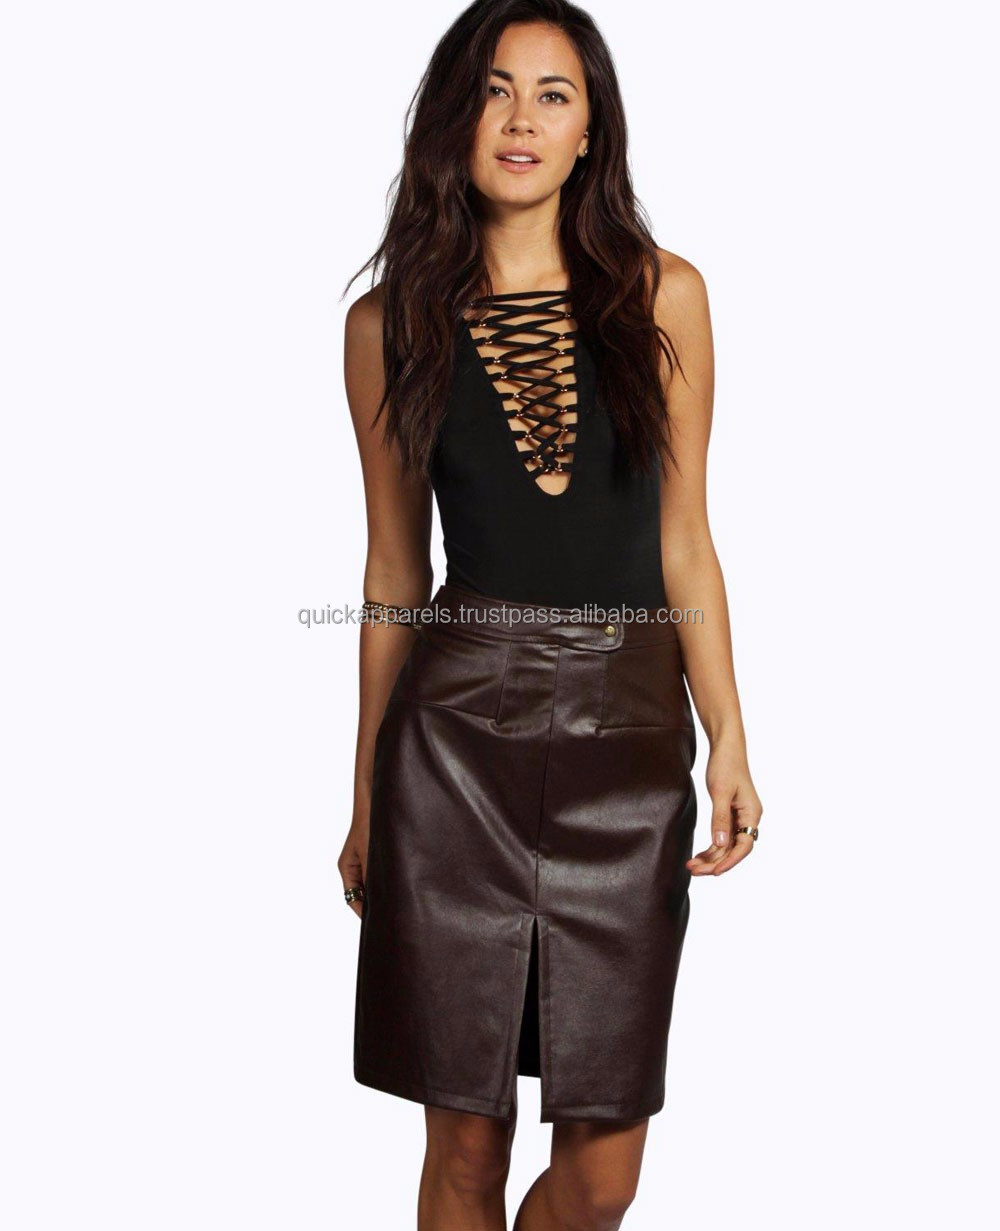 new girls ladies' fashion dress leather skirt